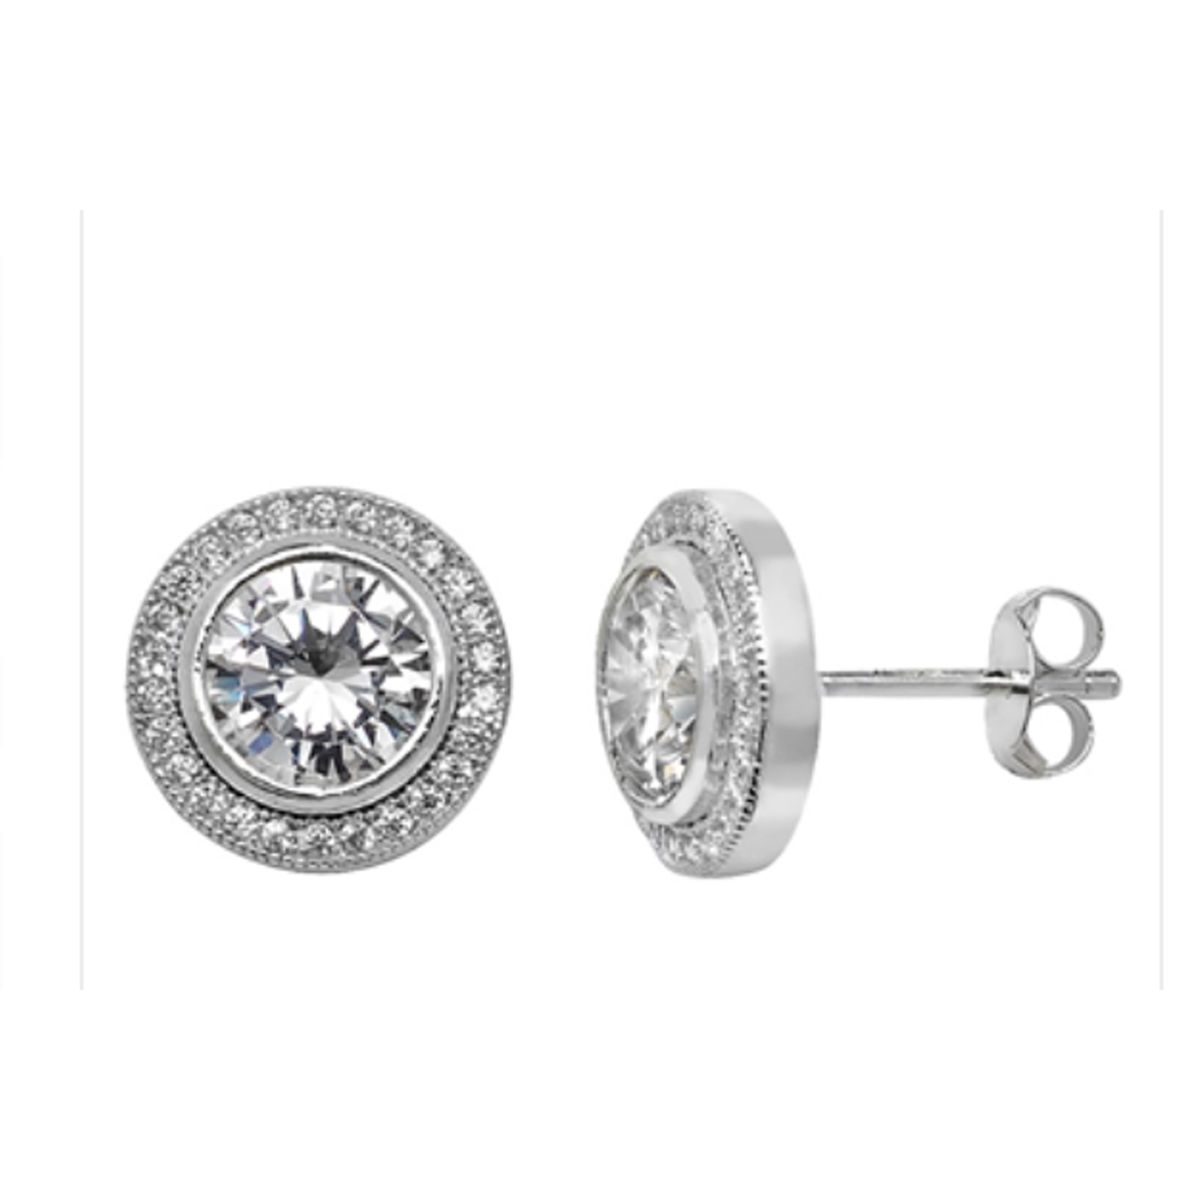 Sterling Silver Round Crystal Earrings - product images  of